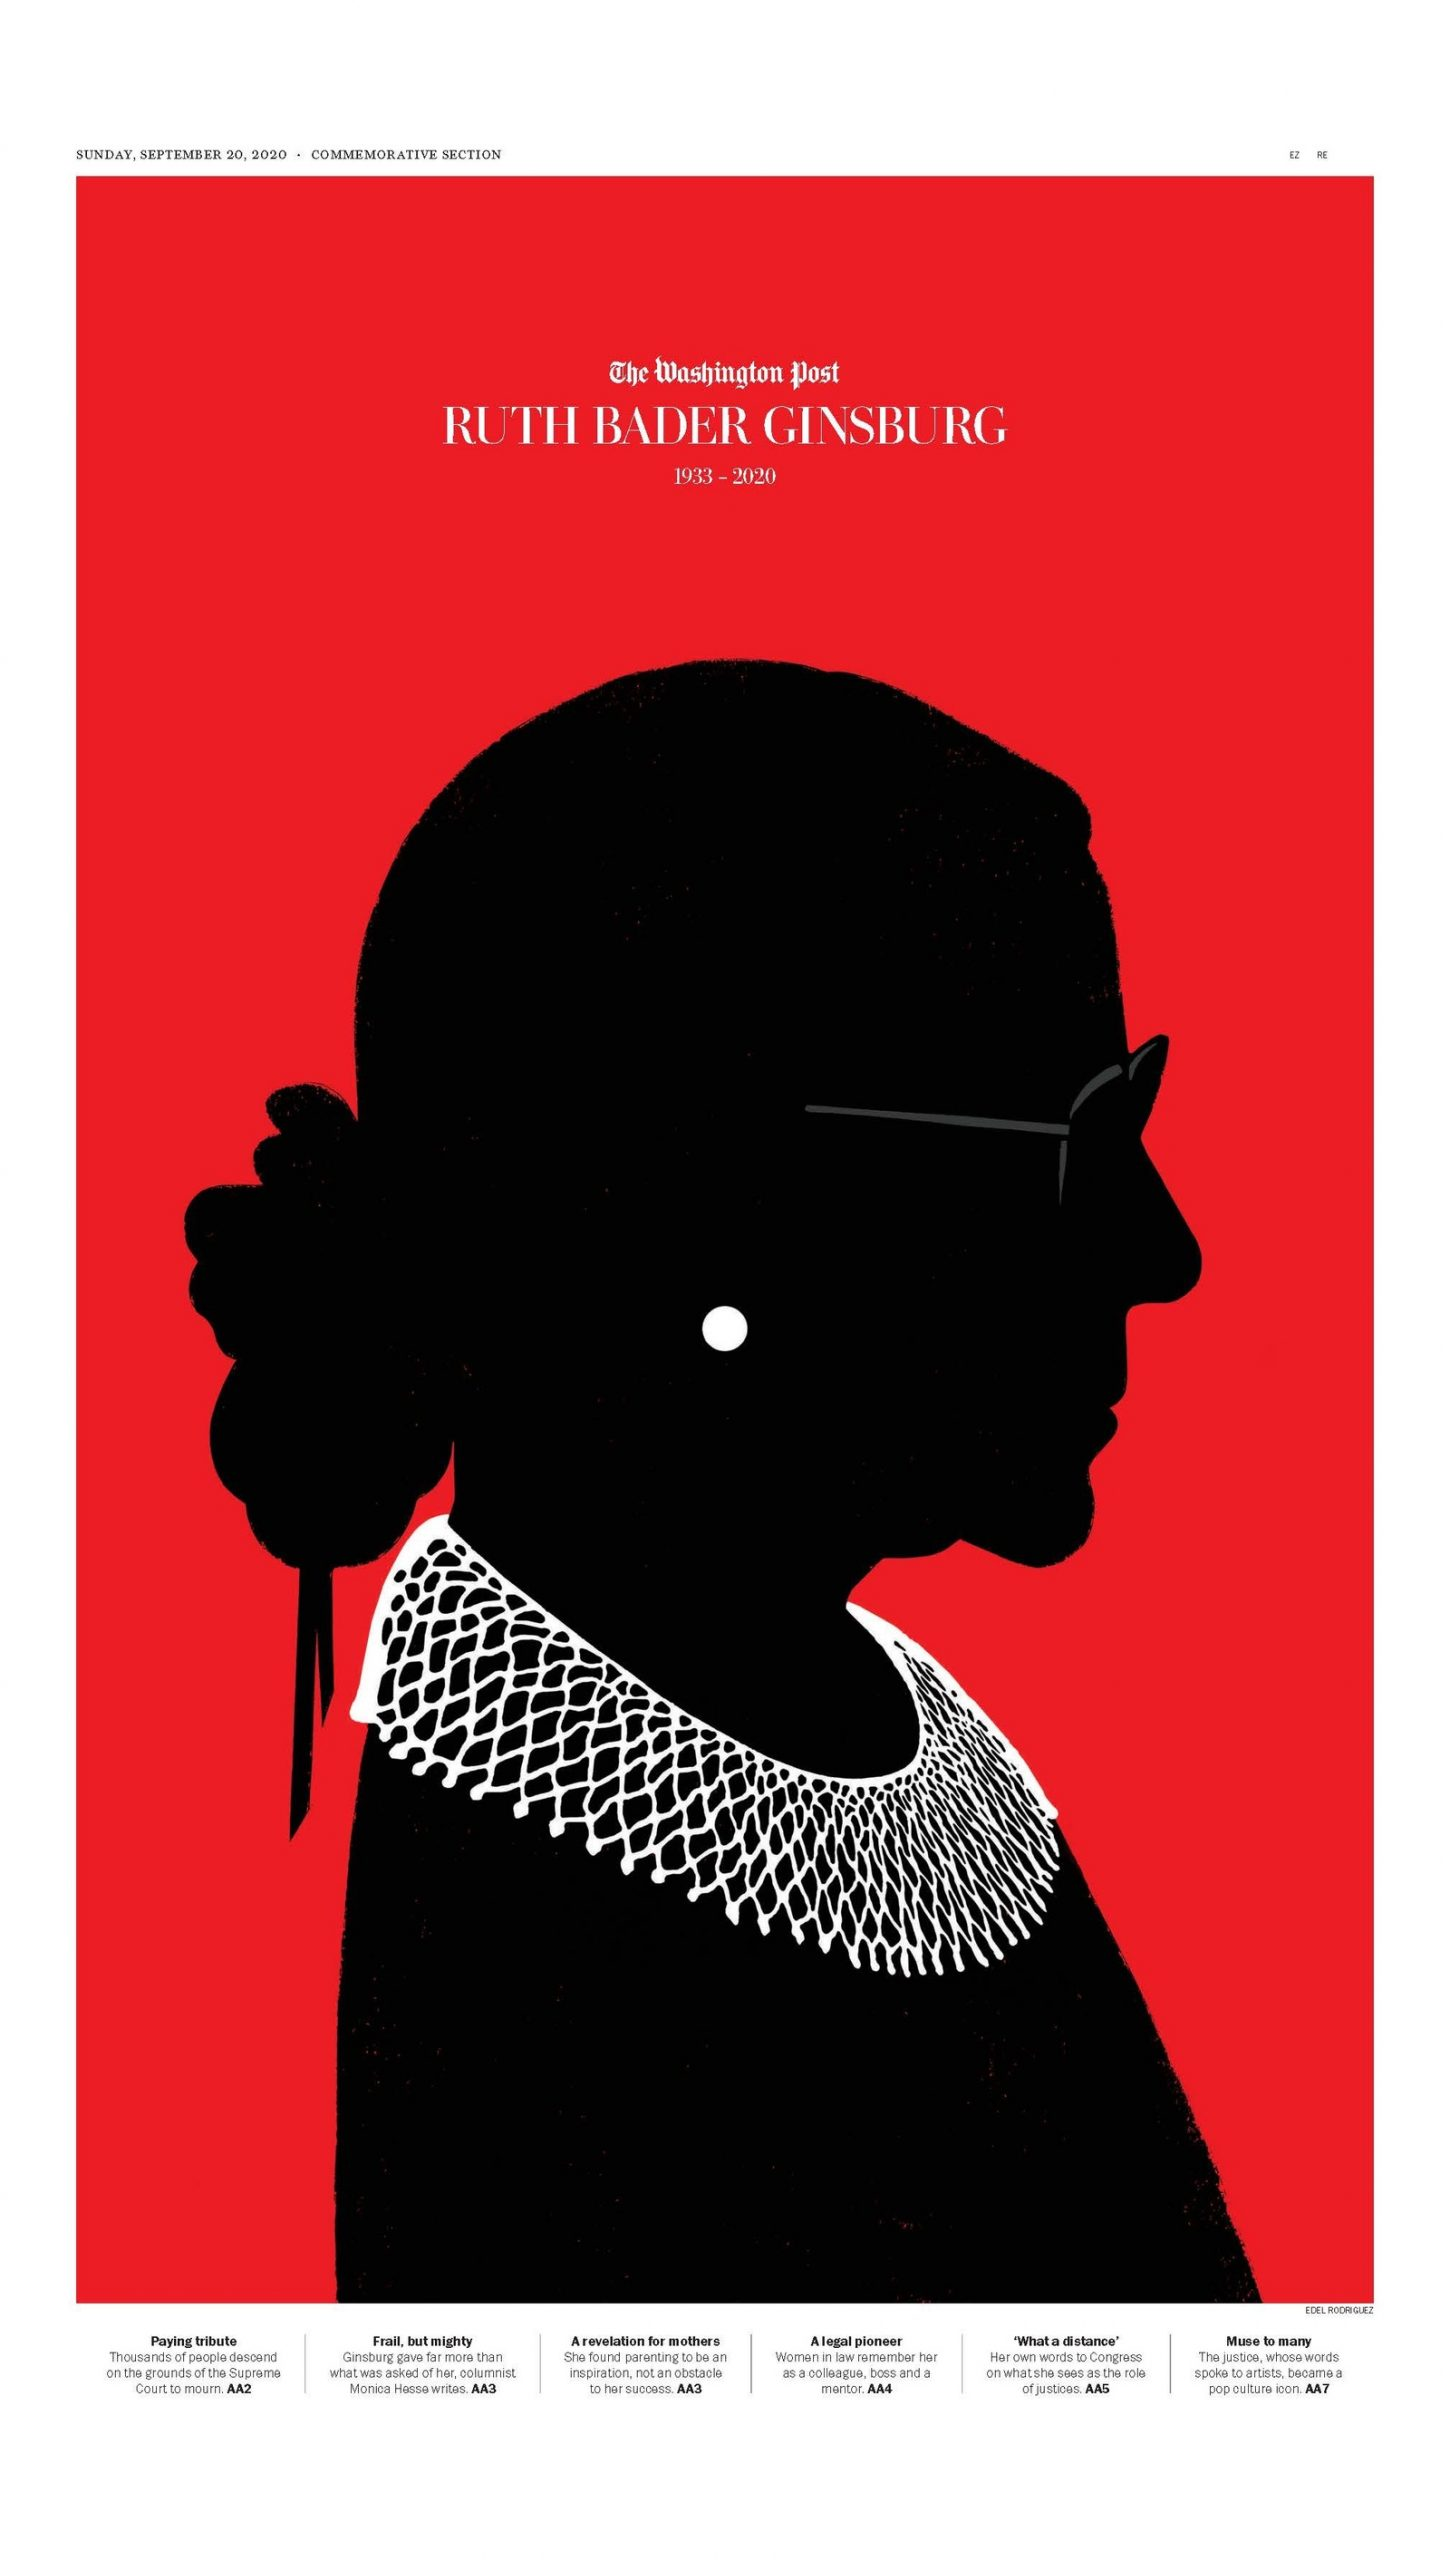 Thumbnail for Designers and Illustrators Pay Tribute to RBG